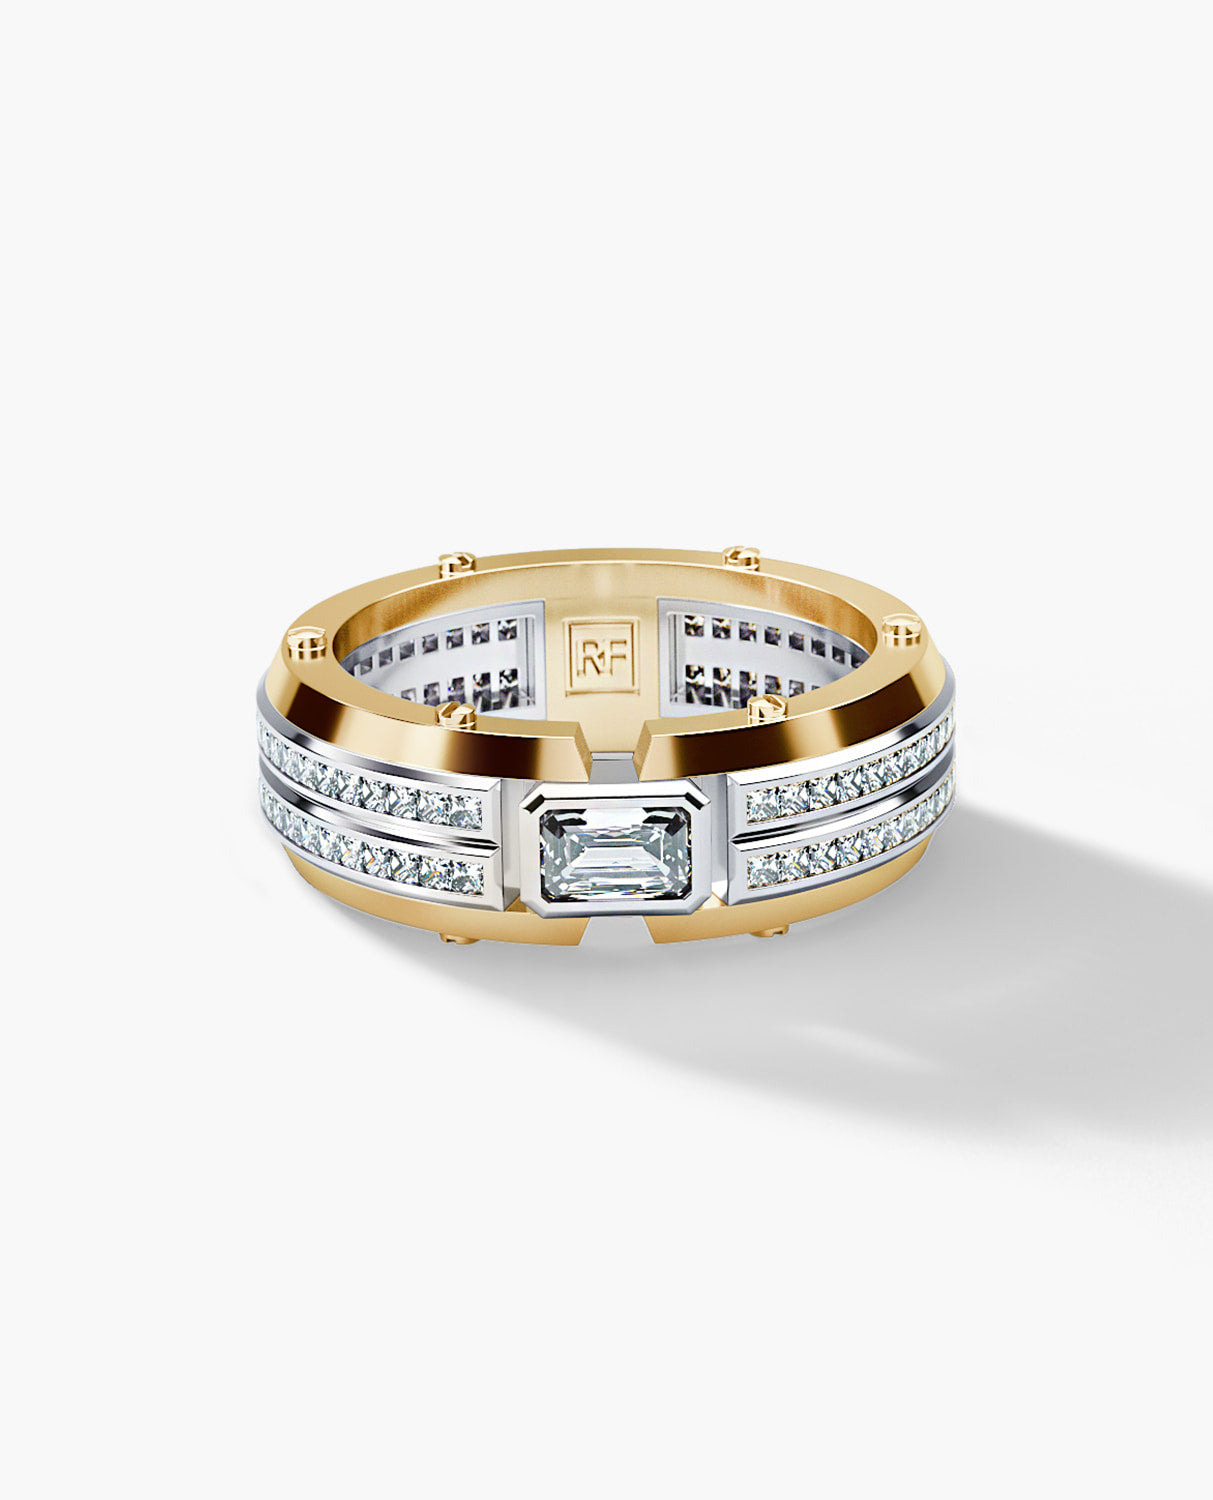 CLEBURNE Mens Two-Tone Gold Wedding Band with 1.95ct Diamonds